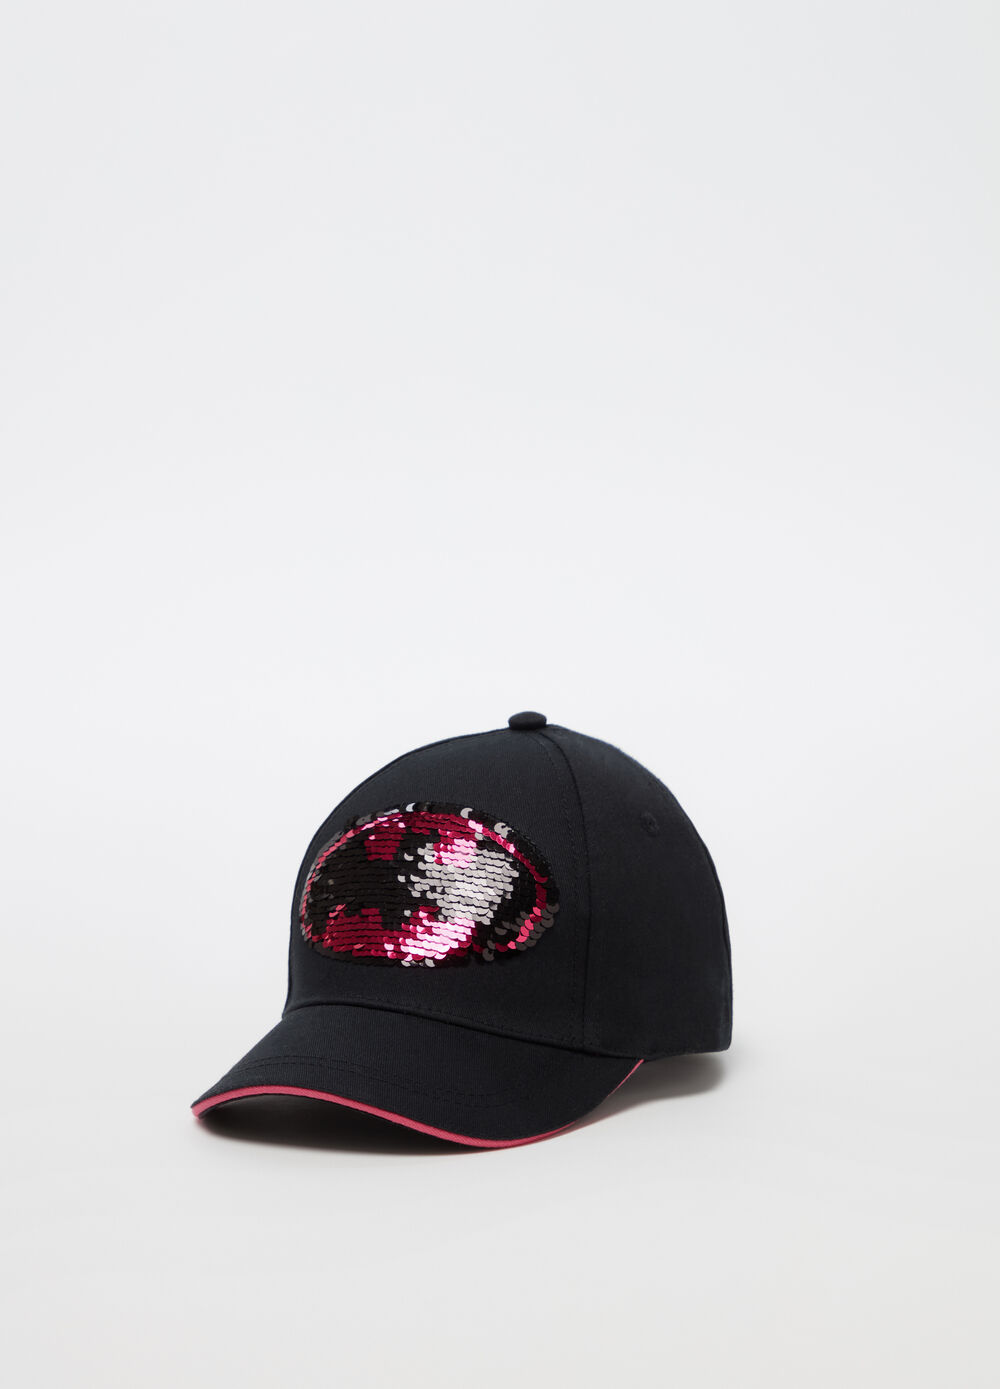 Batman baseball cap with sequins